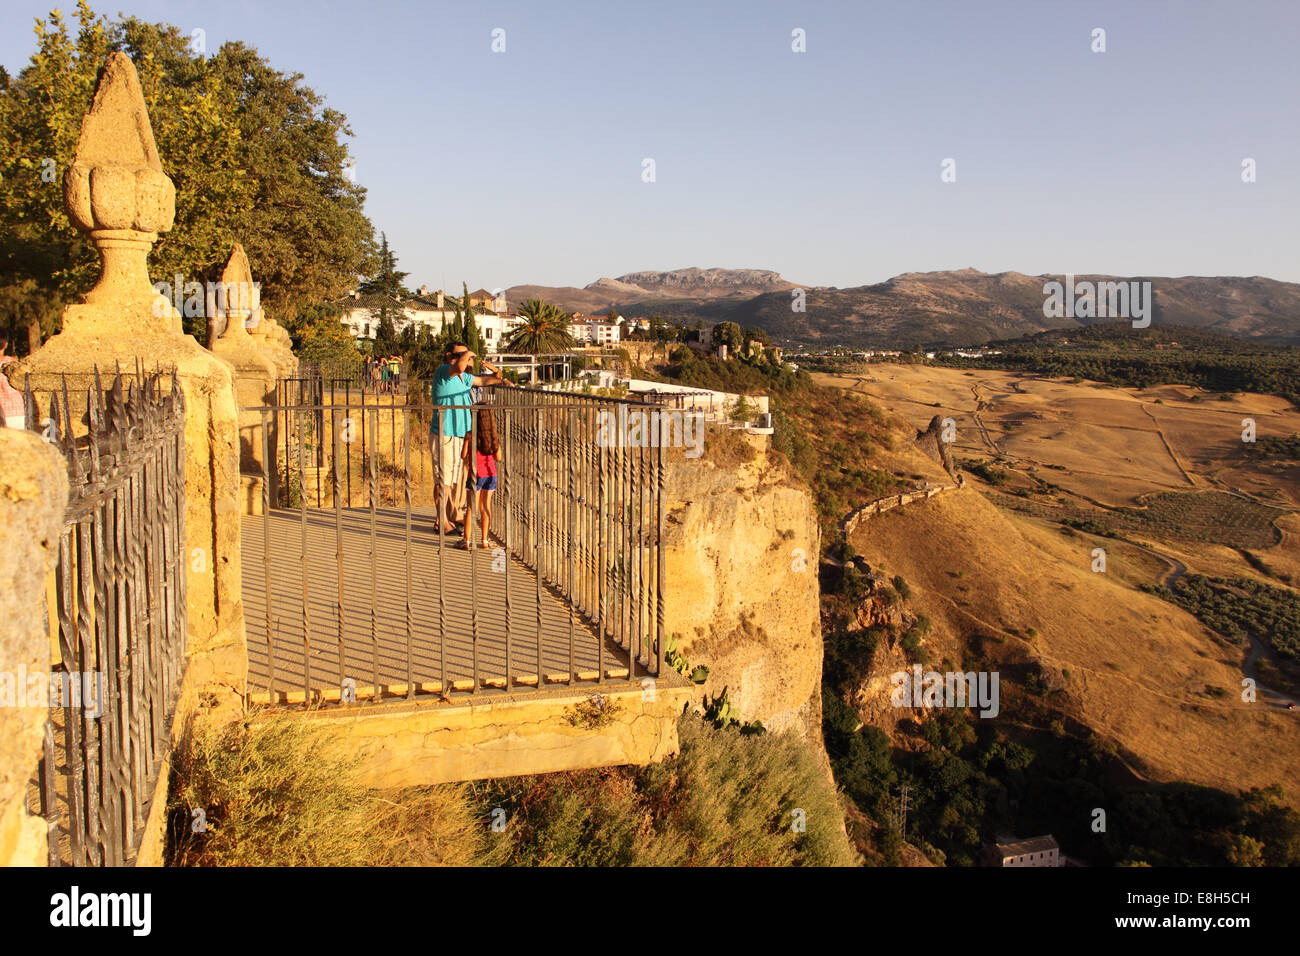 Ronda Spain the town sits on top of tall cliffs giving spectacular views across the  nearby Sierra de Grazalema mountains Stock Photo